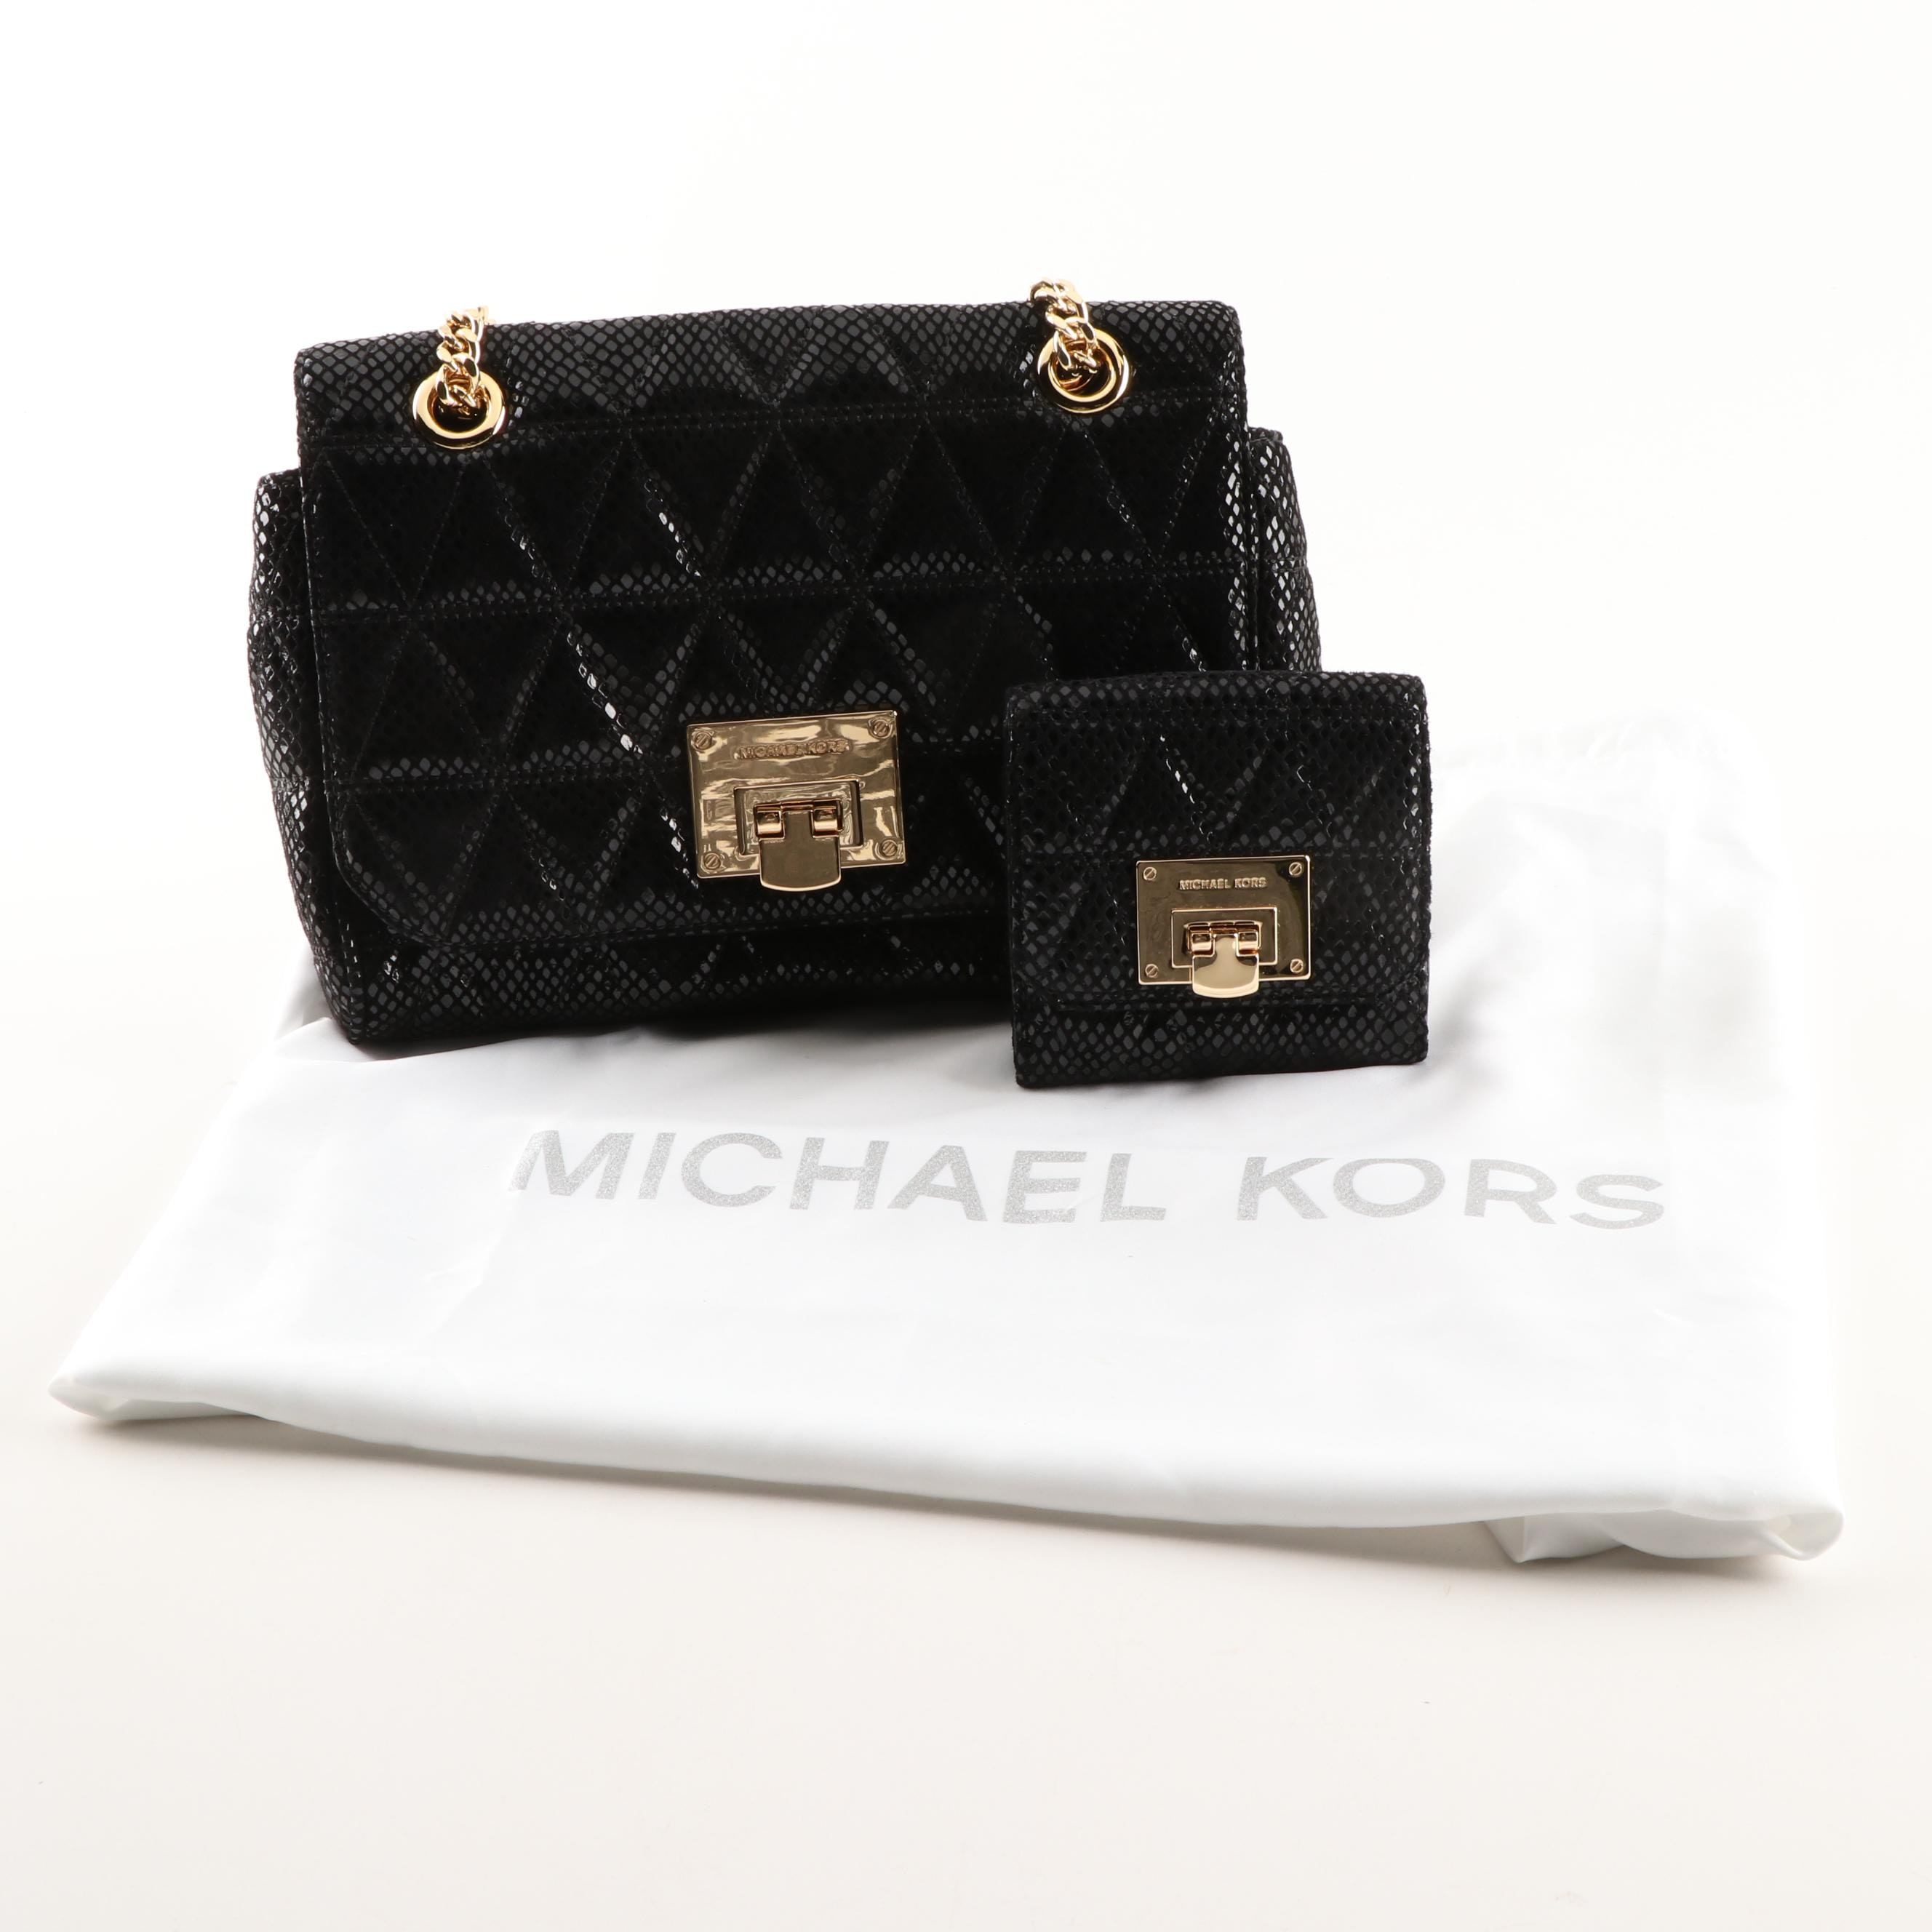 Michael Kors Printed Black Leather Shoulder Bag with Matching Coin Wallet